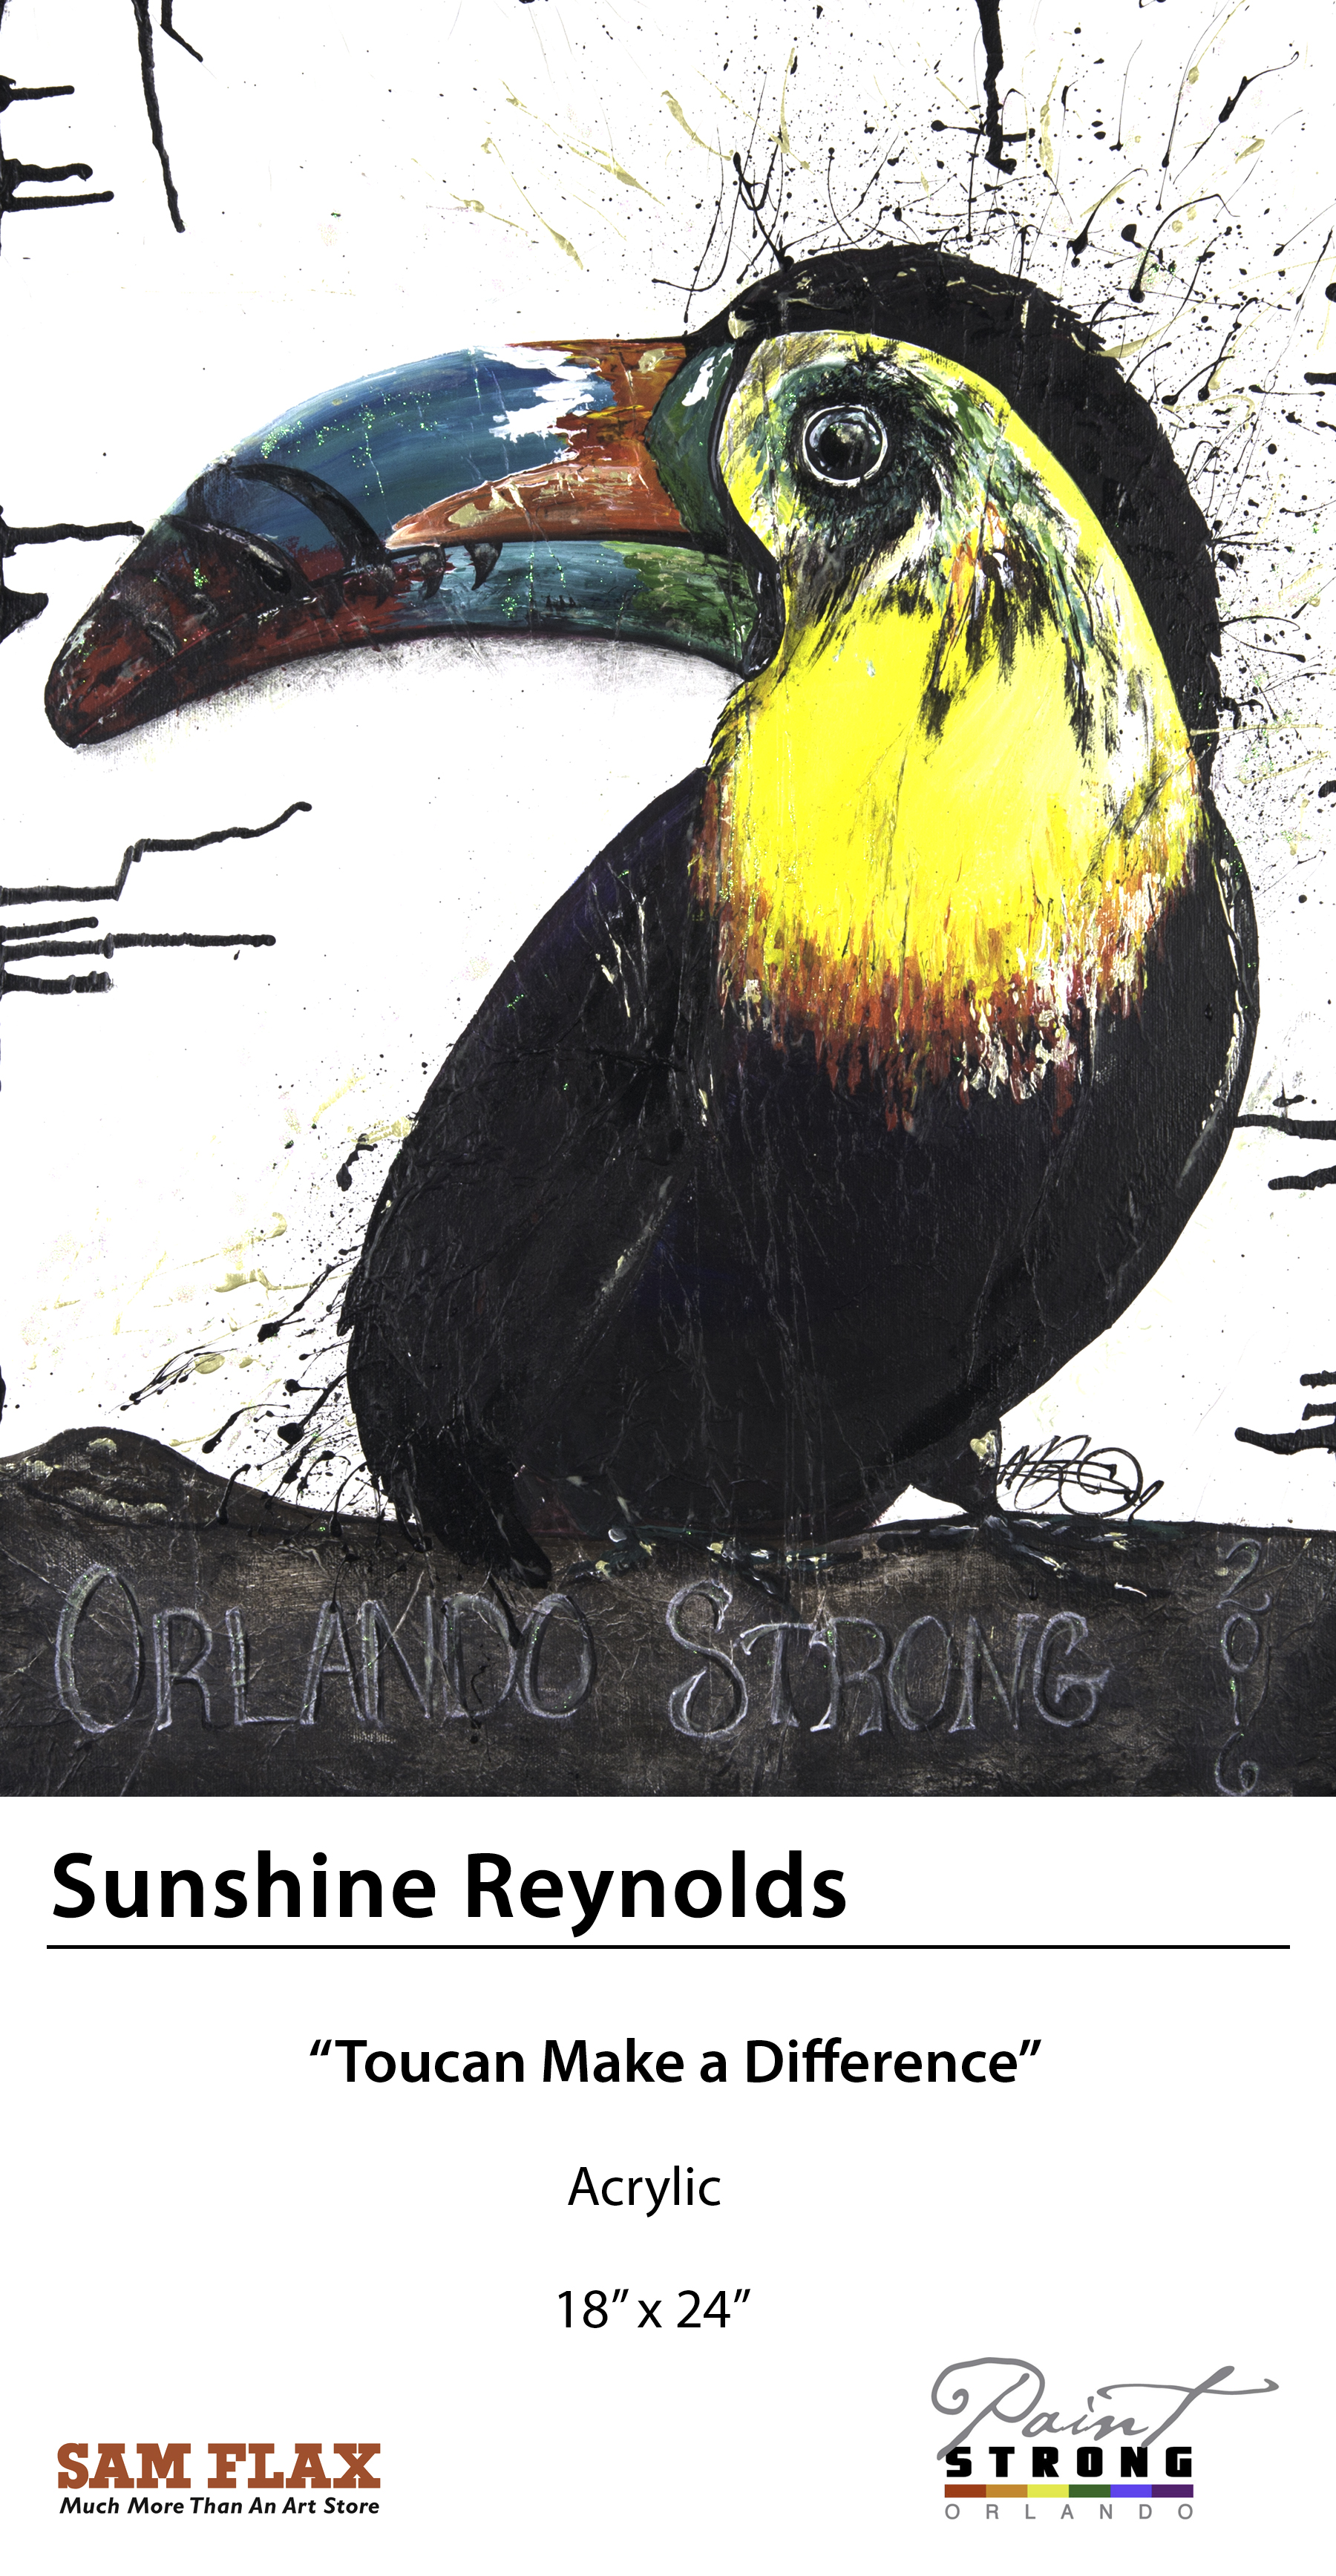 Sunshine Reynolds